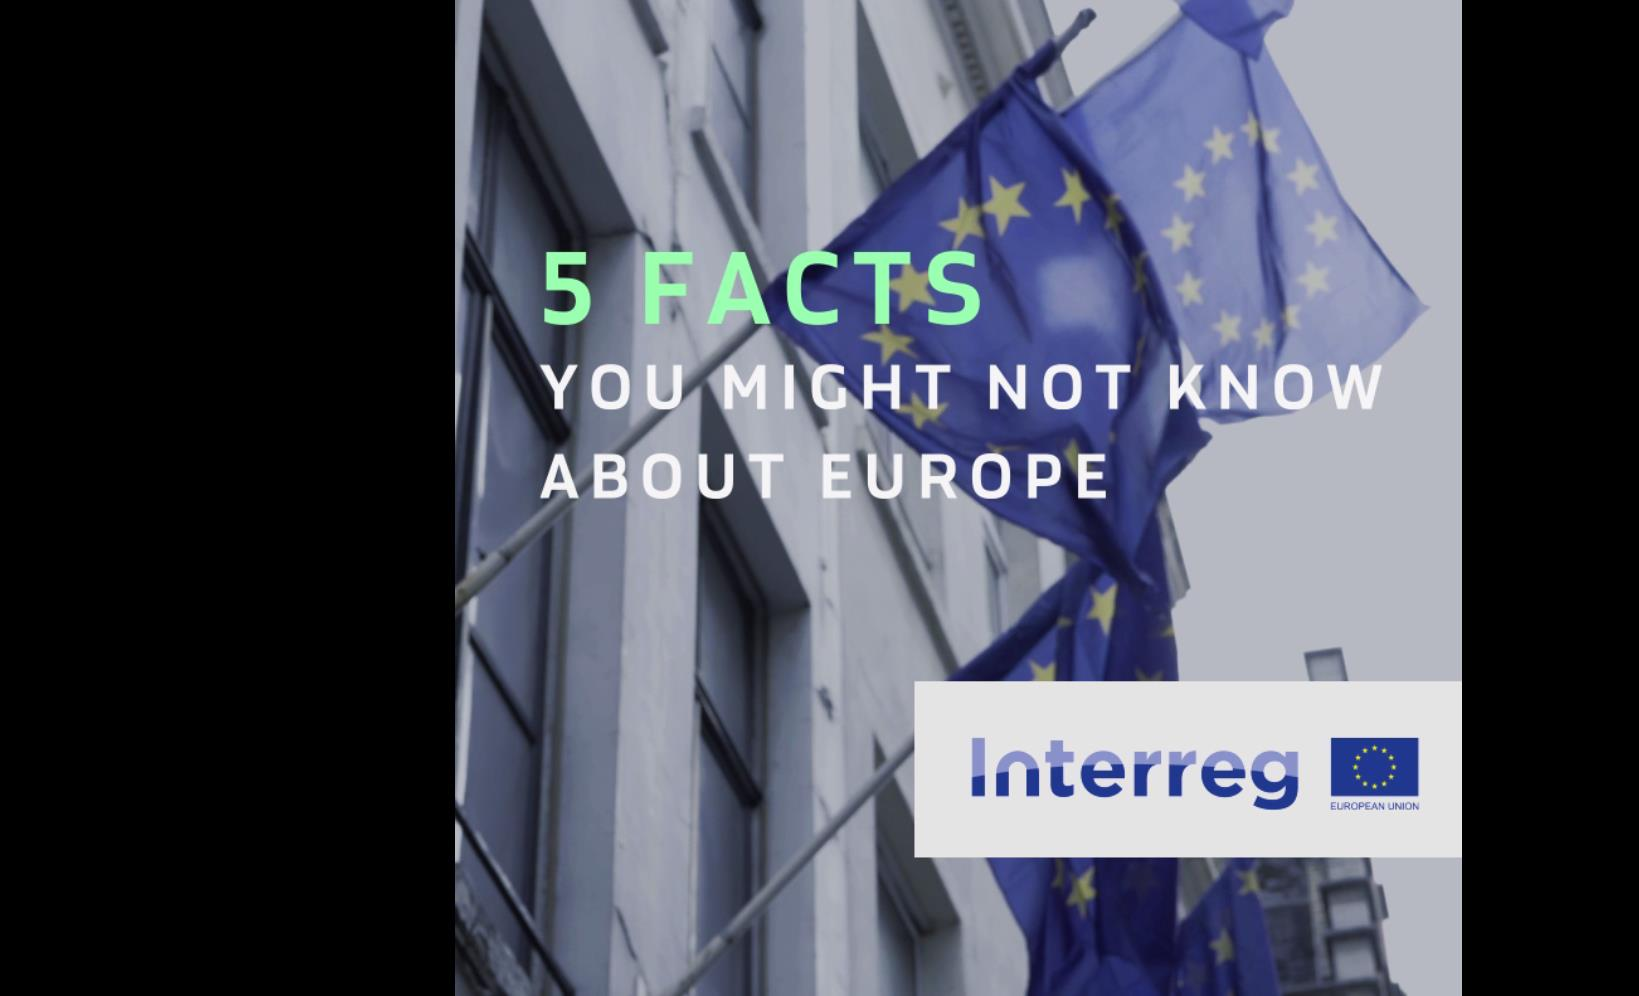 Watch 2007-2013 ex post evaluation results for Interreg… in a video !